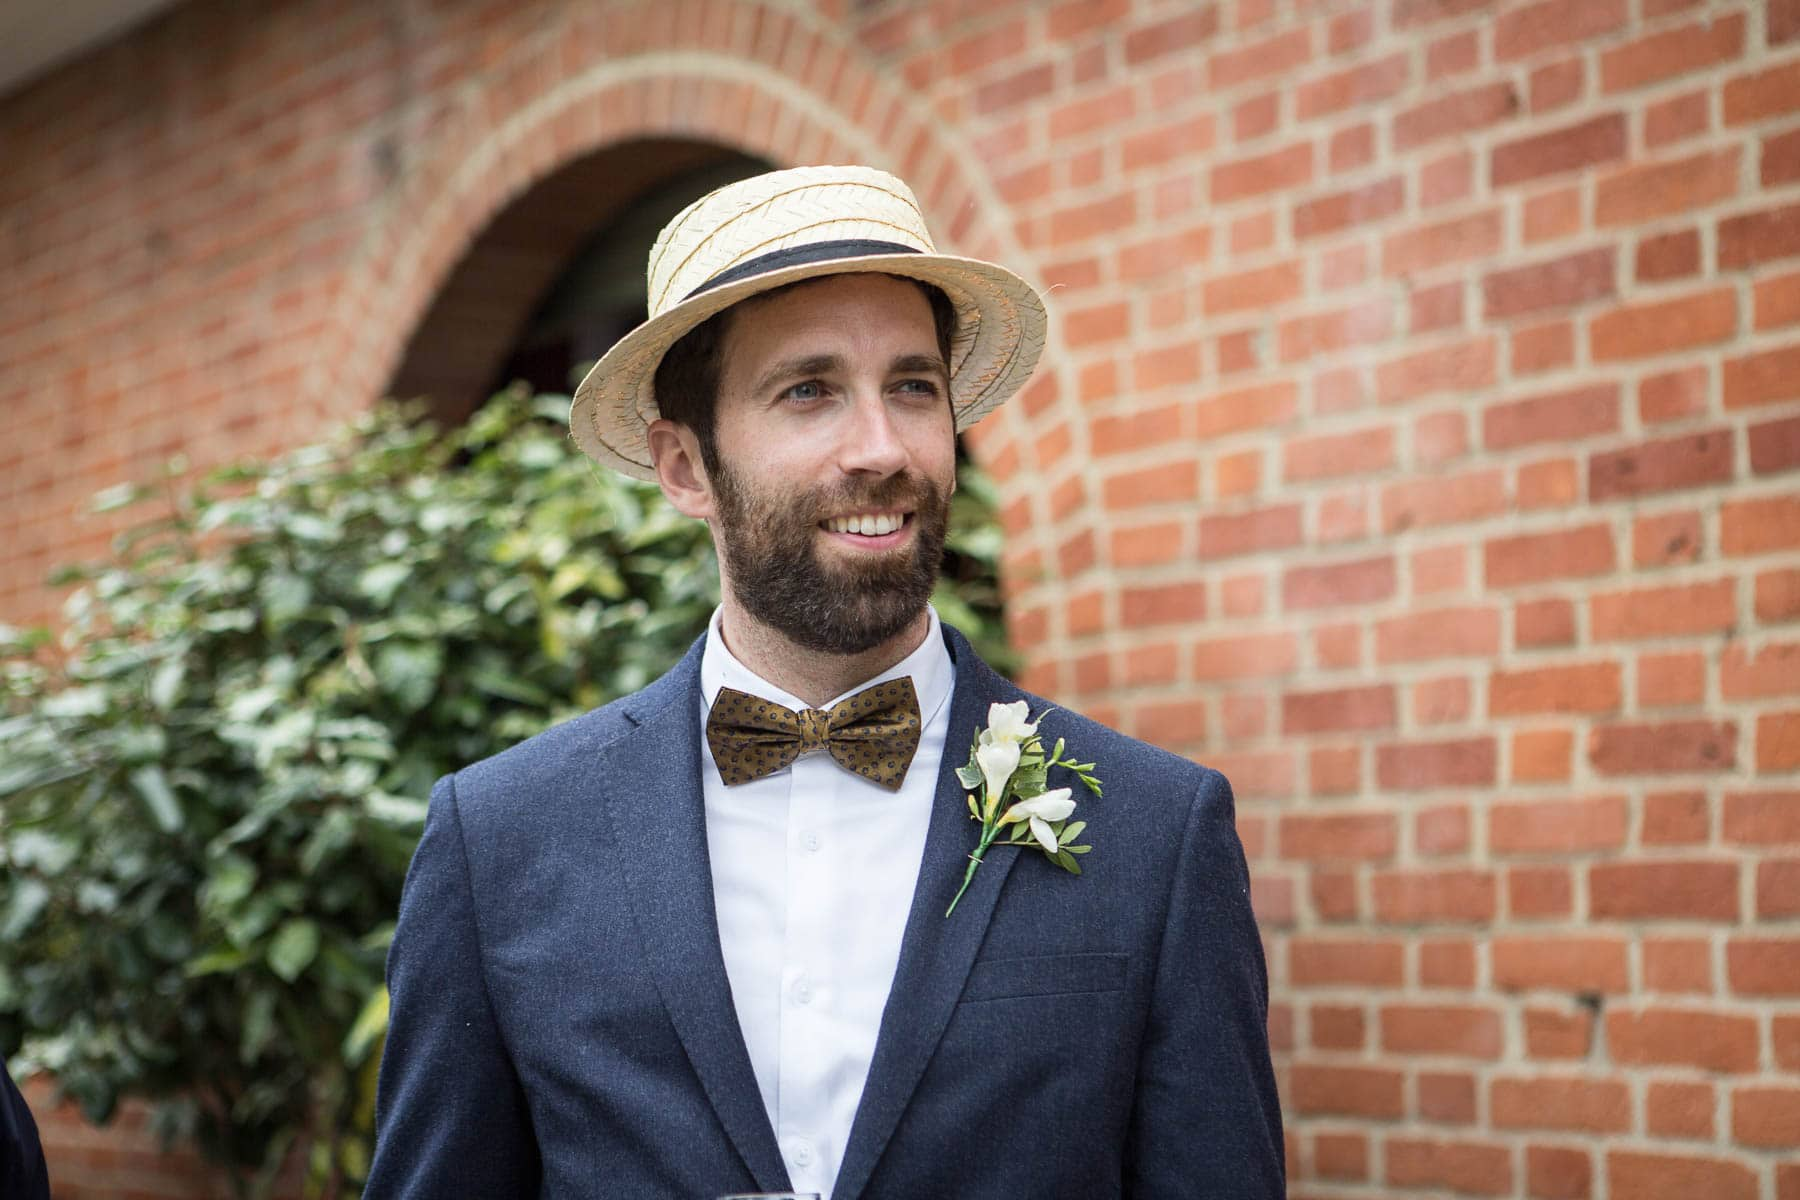 An usher in a bowtie and straw boater